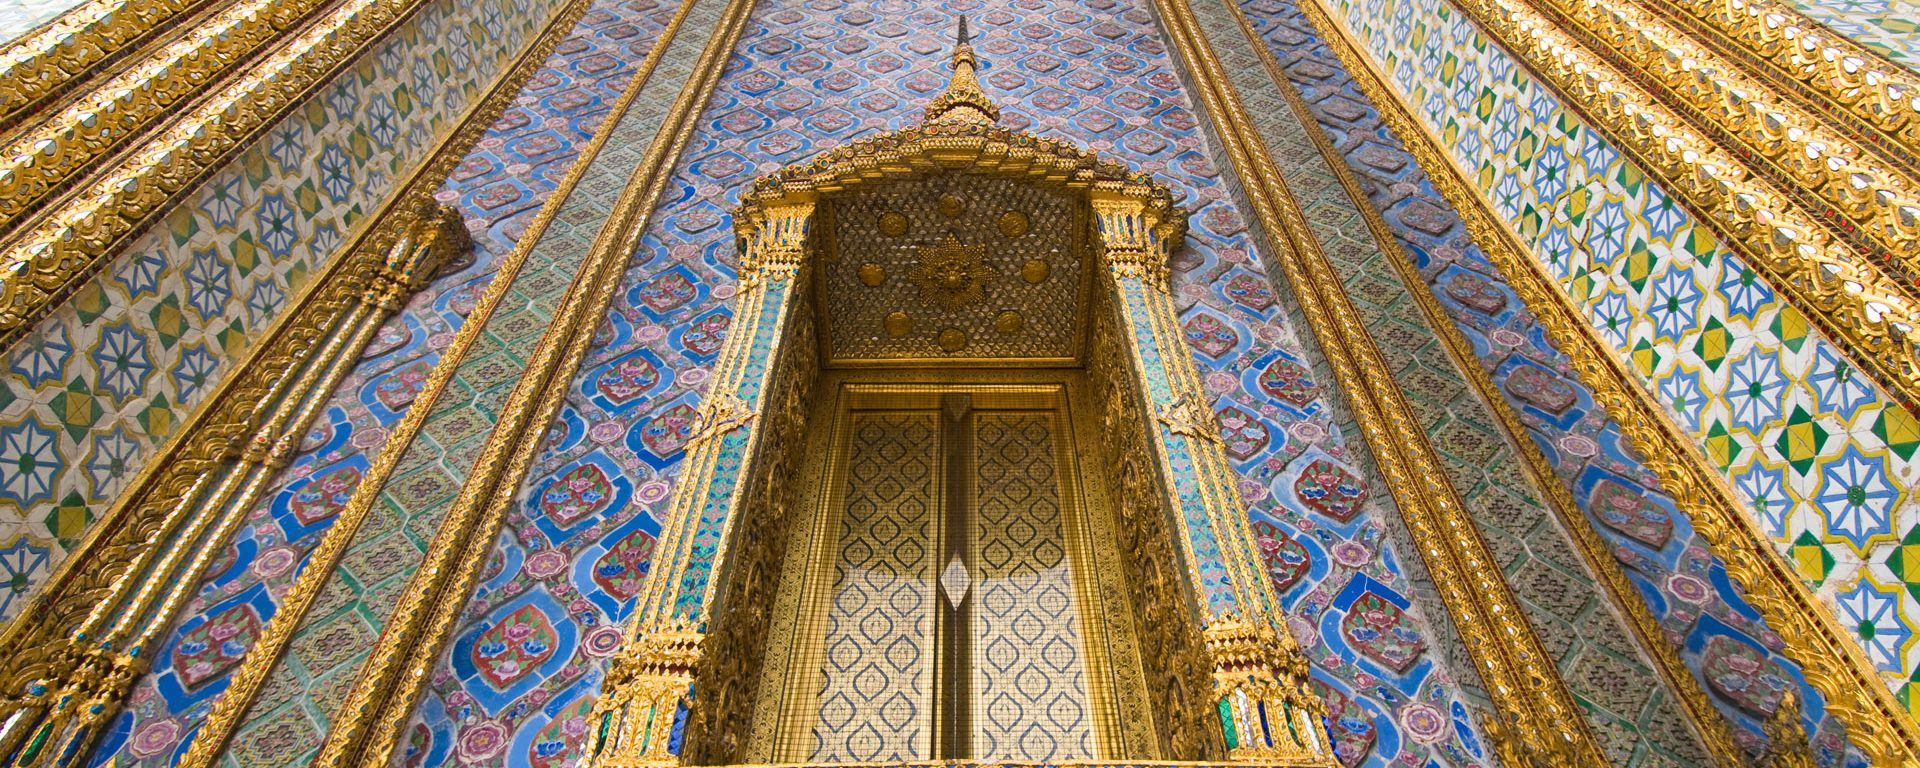 Detail of window and columns of Wat Phra Kaew in the Royal Palace complex in Bangkok, Thailand